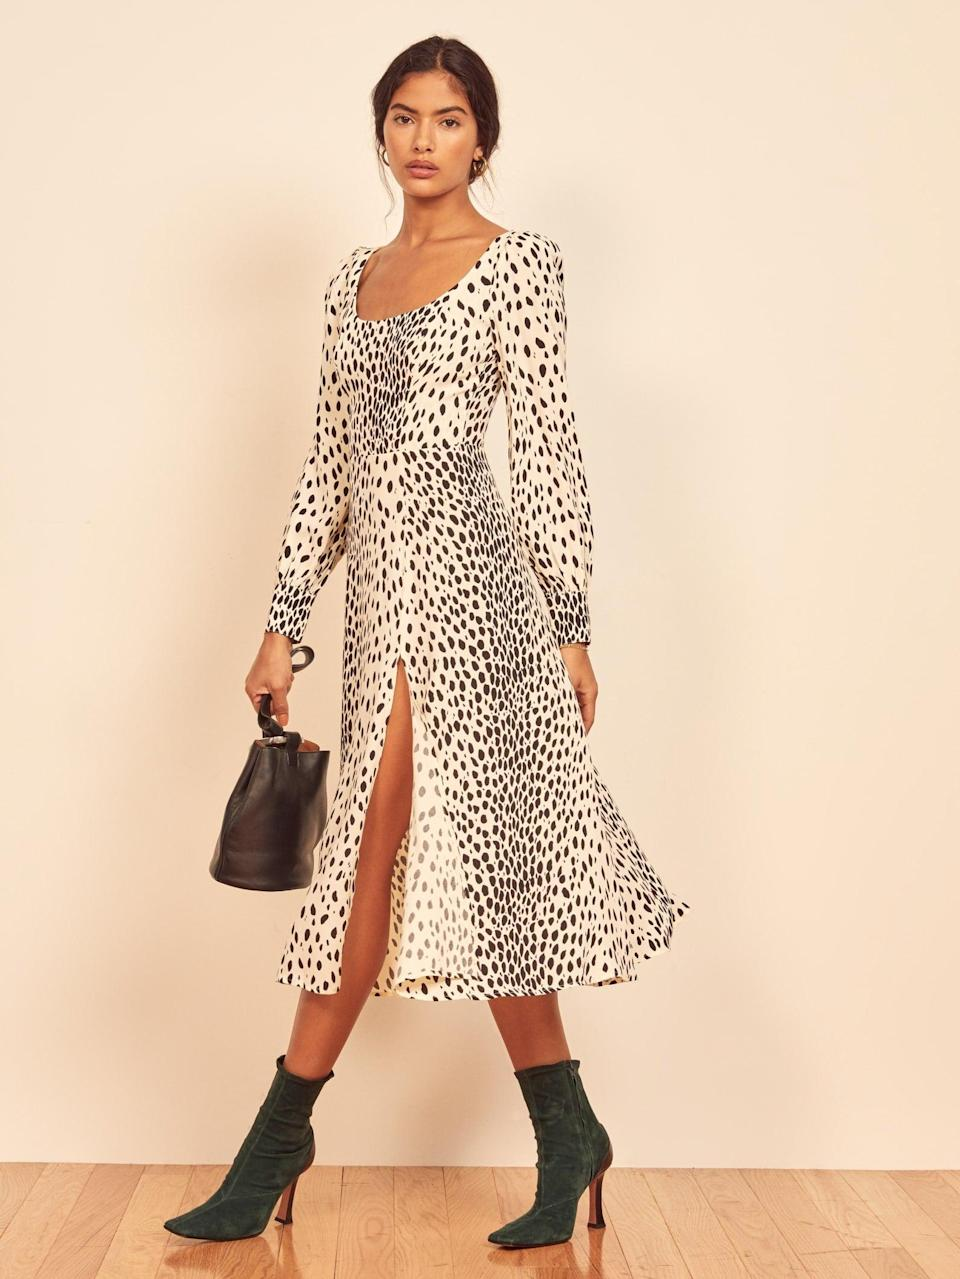 """<br><br><strong>Reformation</strong> Alessi Dress, $, available at <a href=""""https://go.skimresources.com/?id=30283X879131&url=https%3A%2F%2Fwww.thereformation.com%2Fproducts%2Falessi-dress%3Fcolor%3DCheetah"""" rel=""""nofollow noopener"""" target=""""_blank"""" data-ylk=""""slk:Reformation"""" class=""""link rapid-noclick-resp"""">Reformation</a>"""